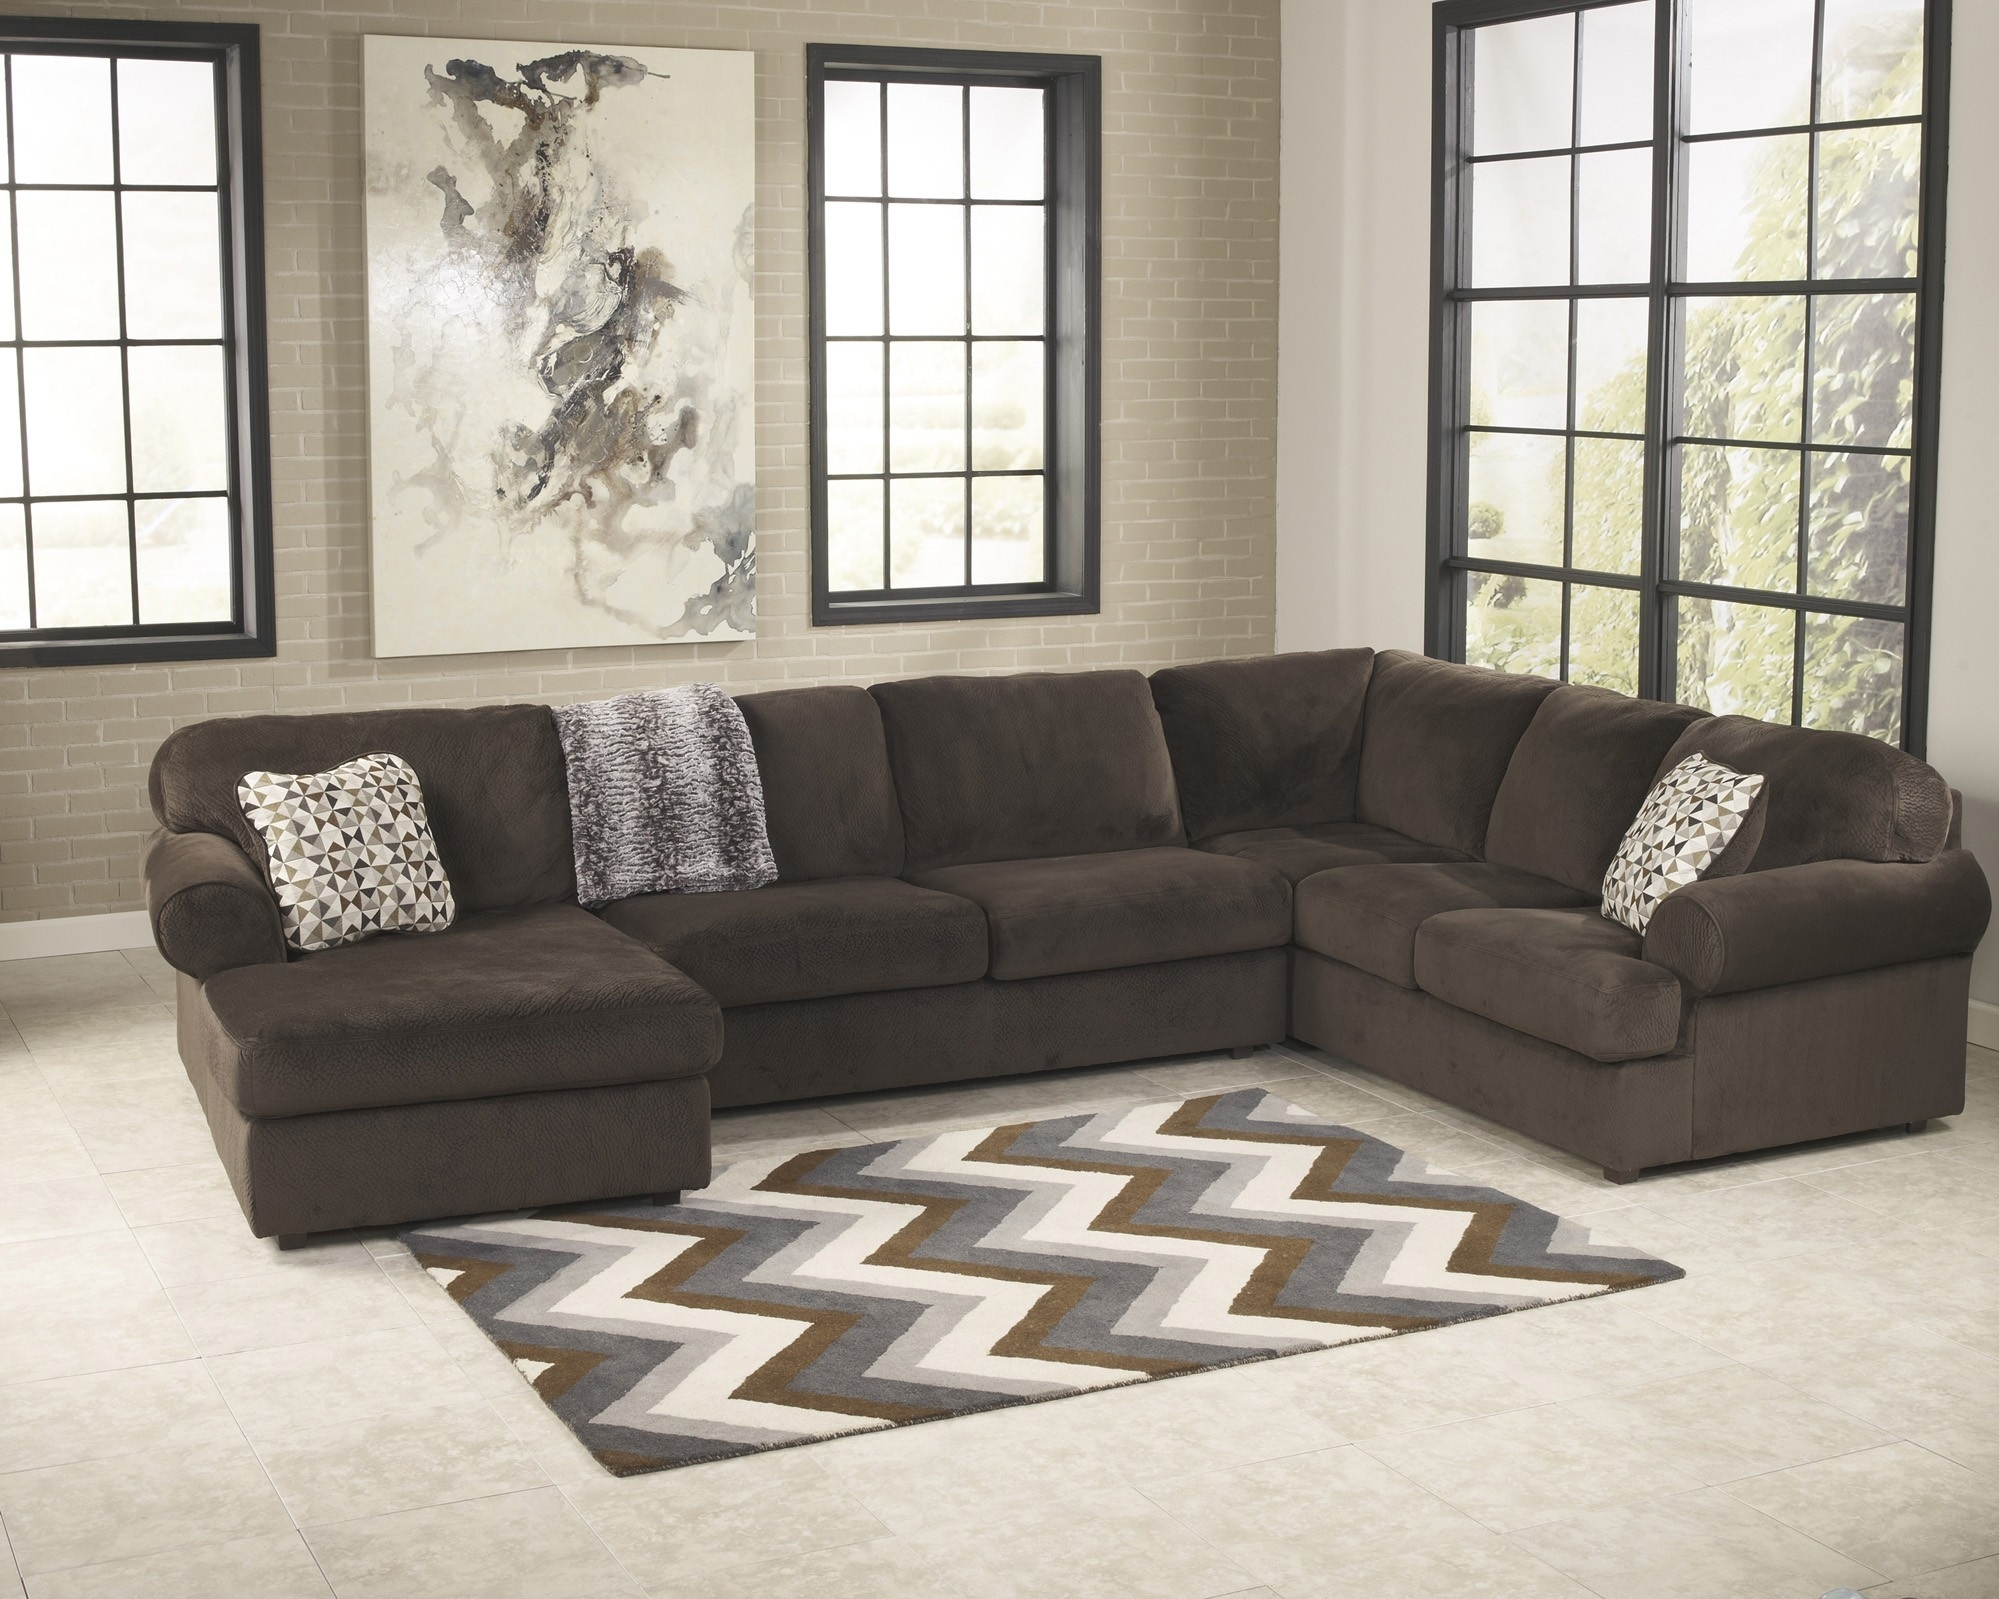 Jessa Place Chocolate 3 Piece Sectional Sofa For $ (View 9 of 10)